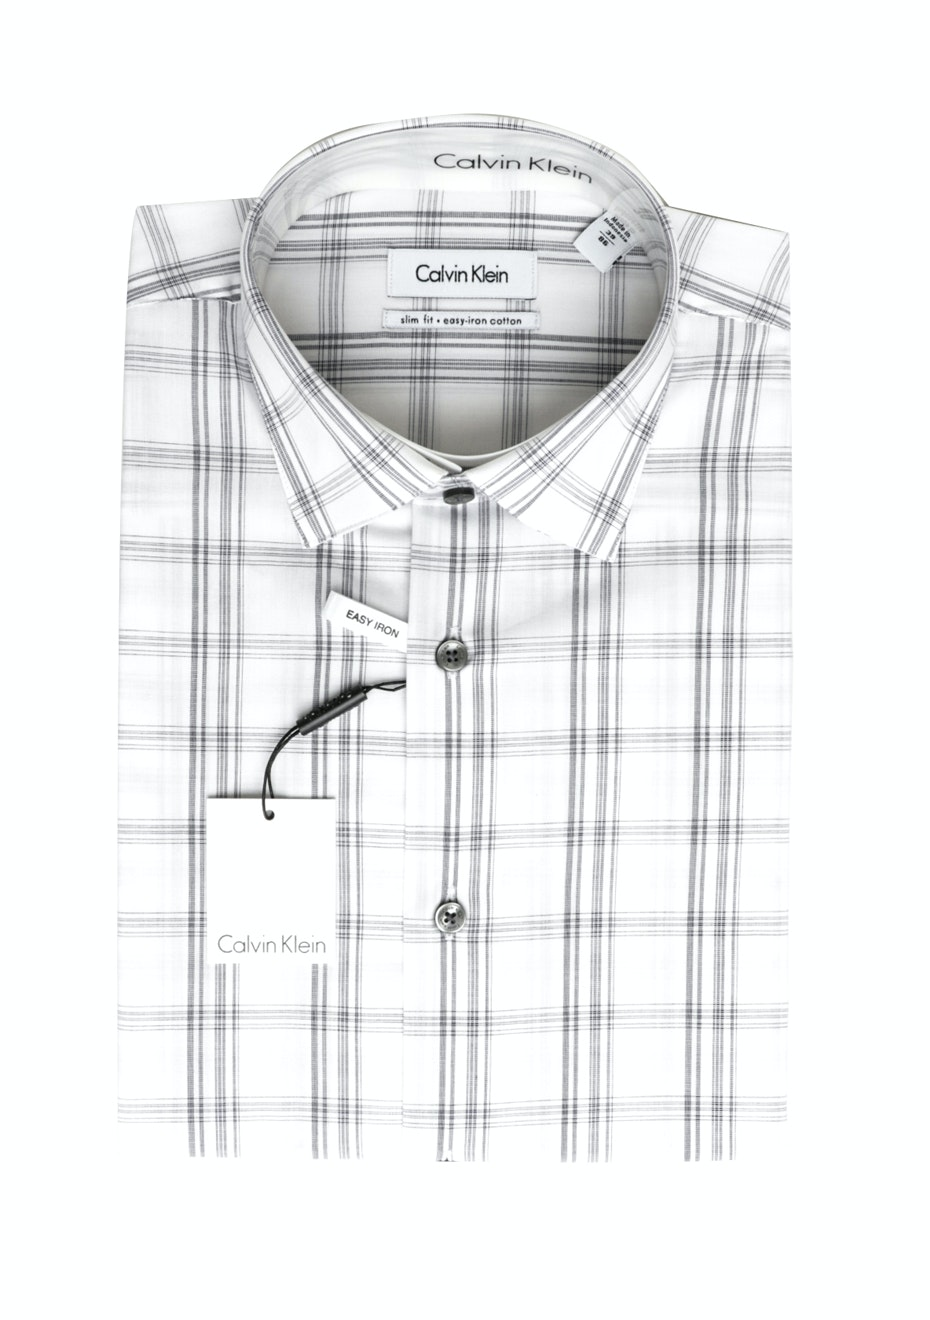 CK Slim Fit Shirt  - Blue/white check